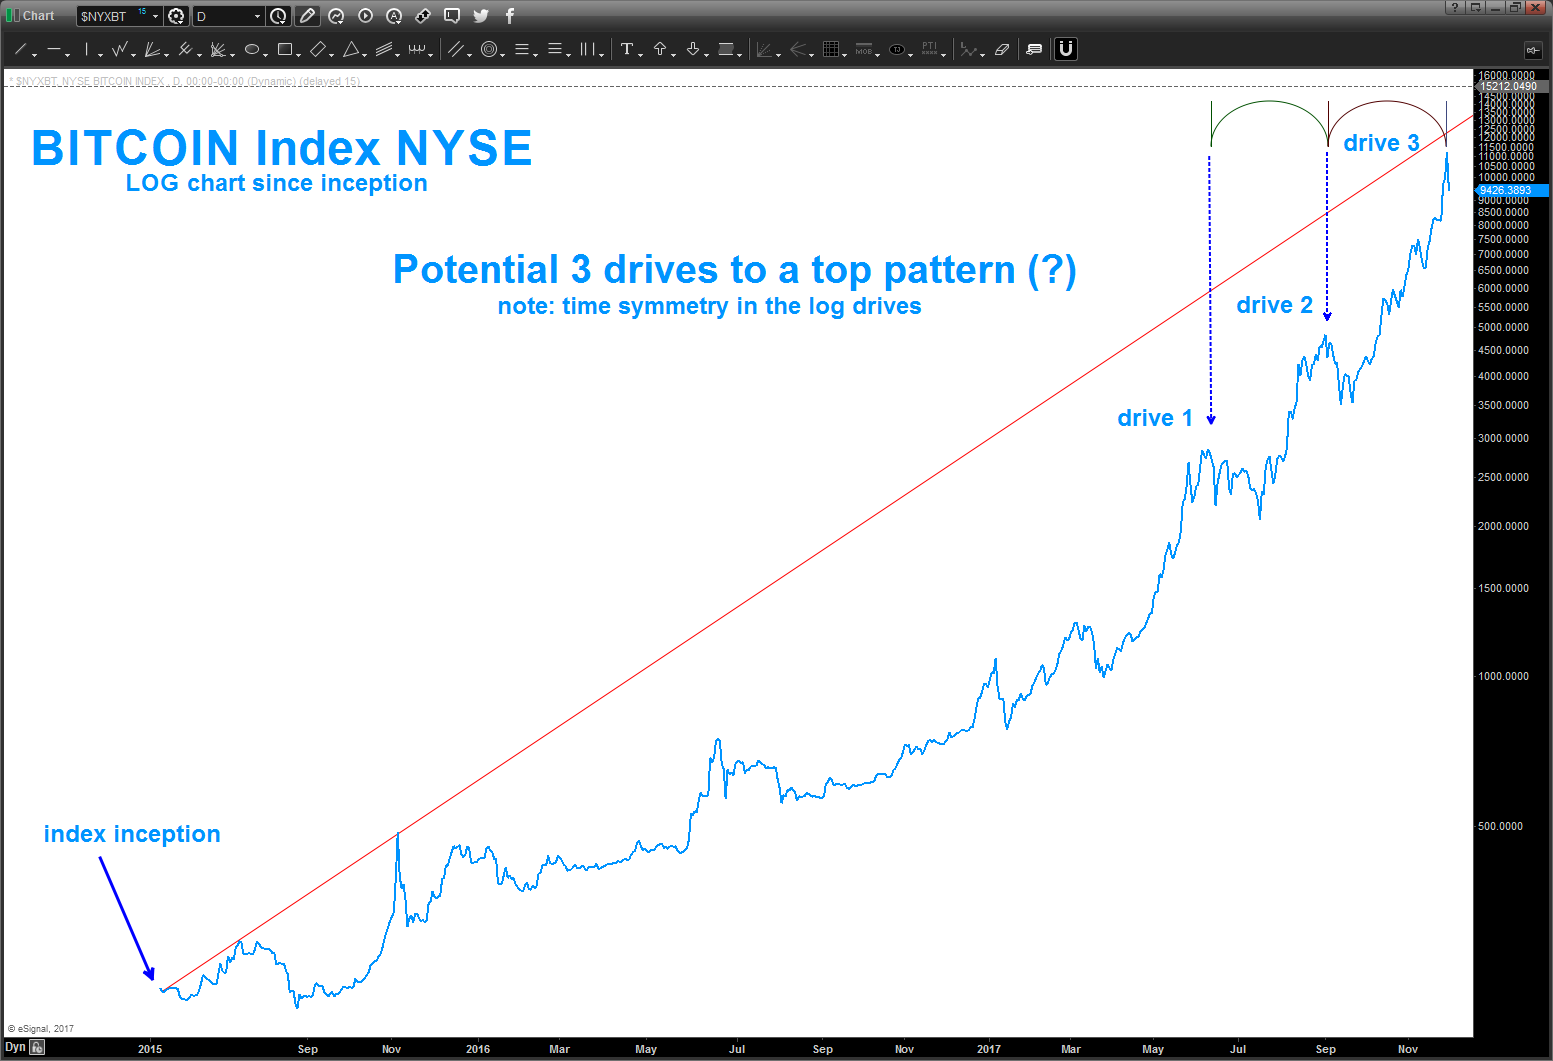 bitcoin rally chart topping 3 drives to high_parabolic_news_investing_december